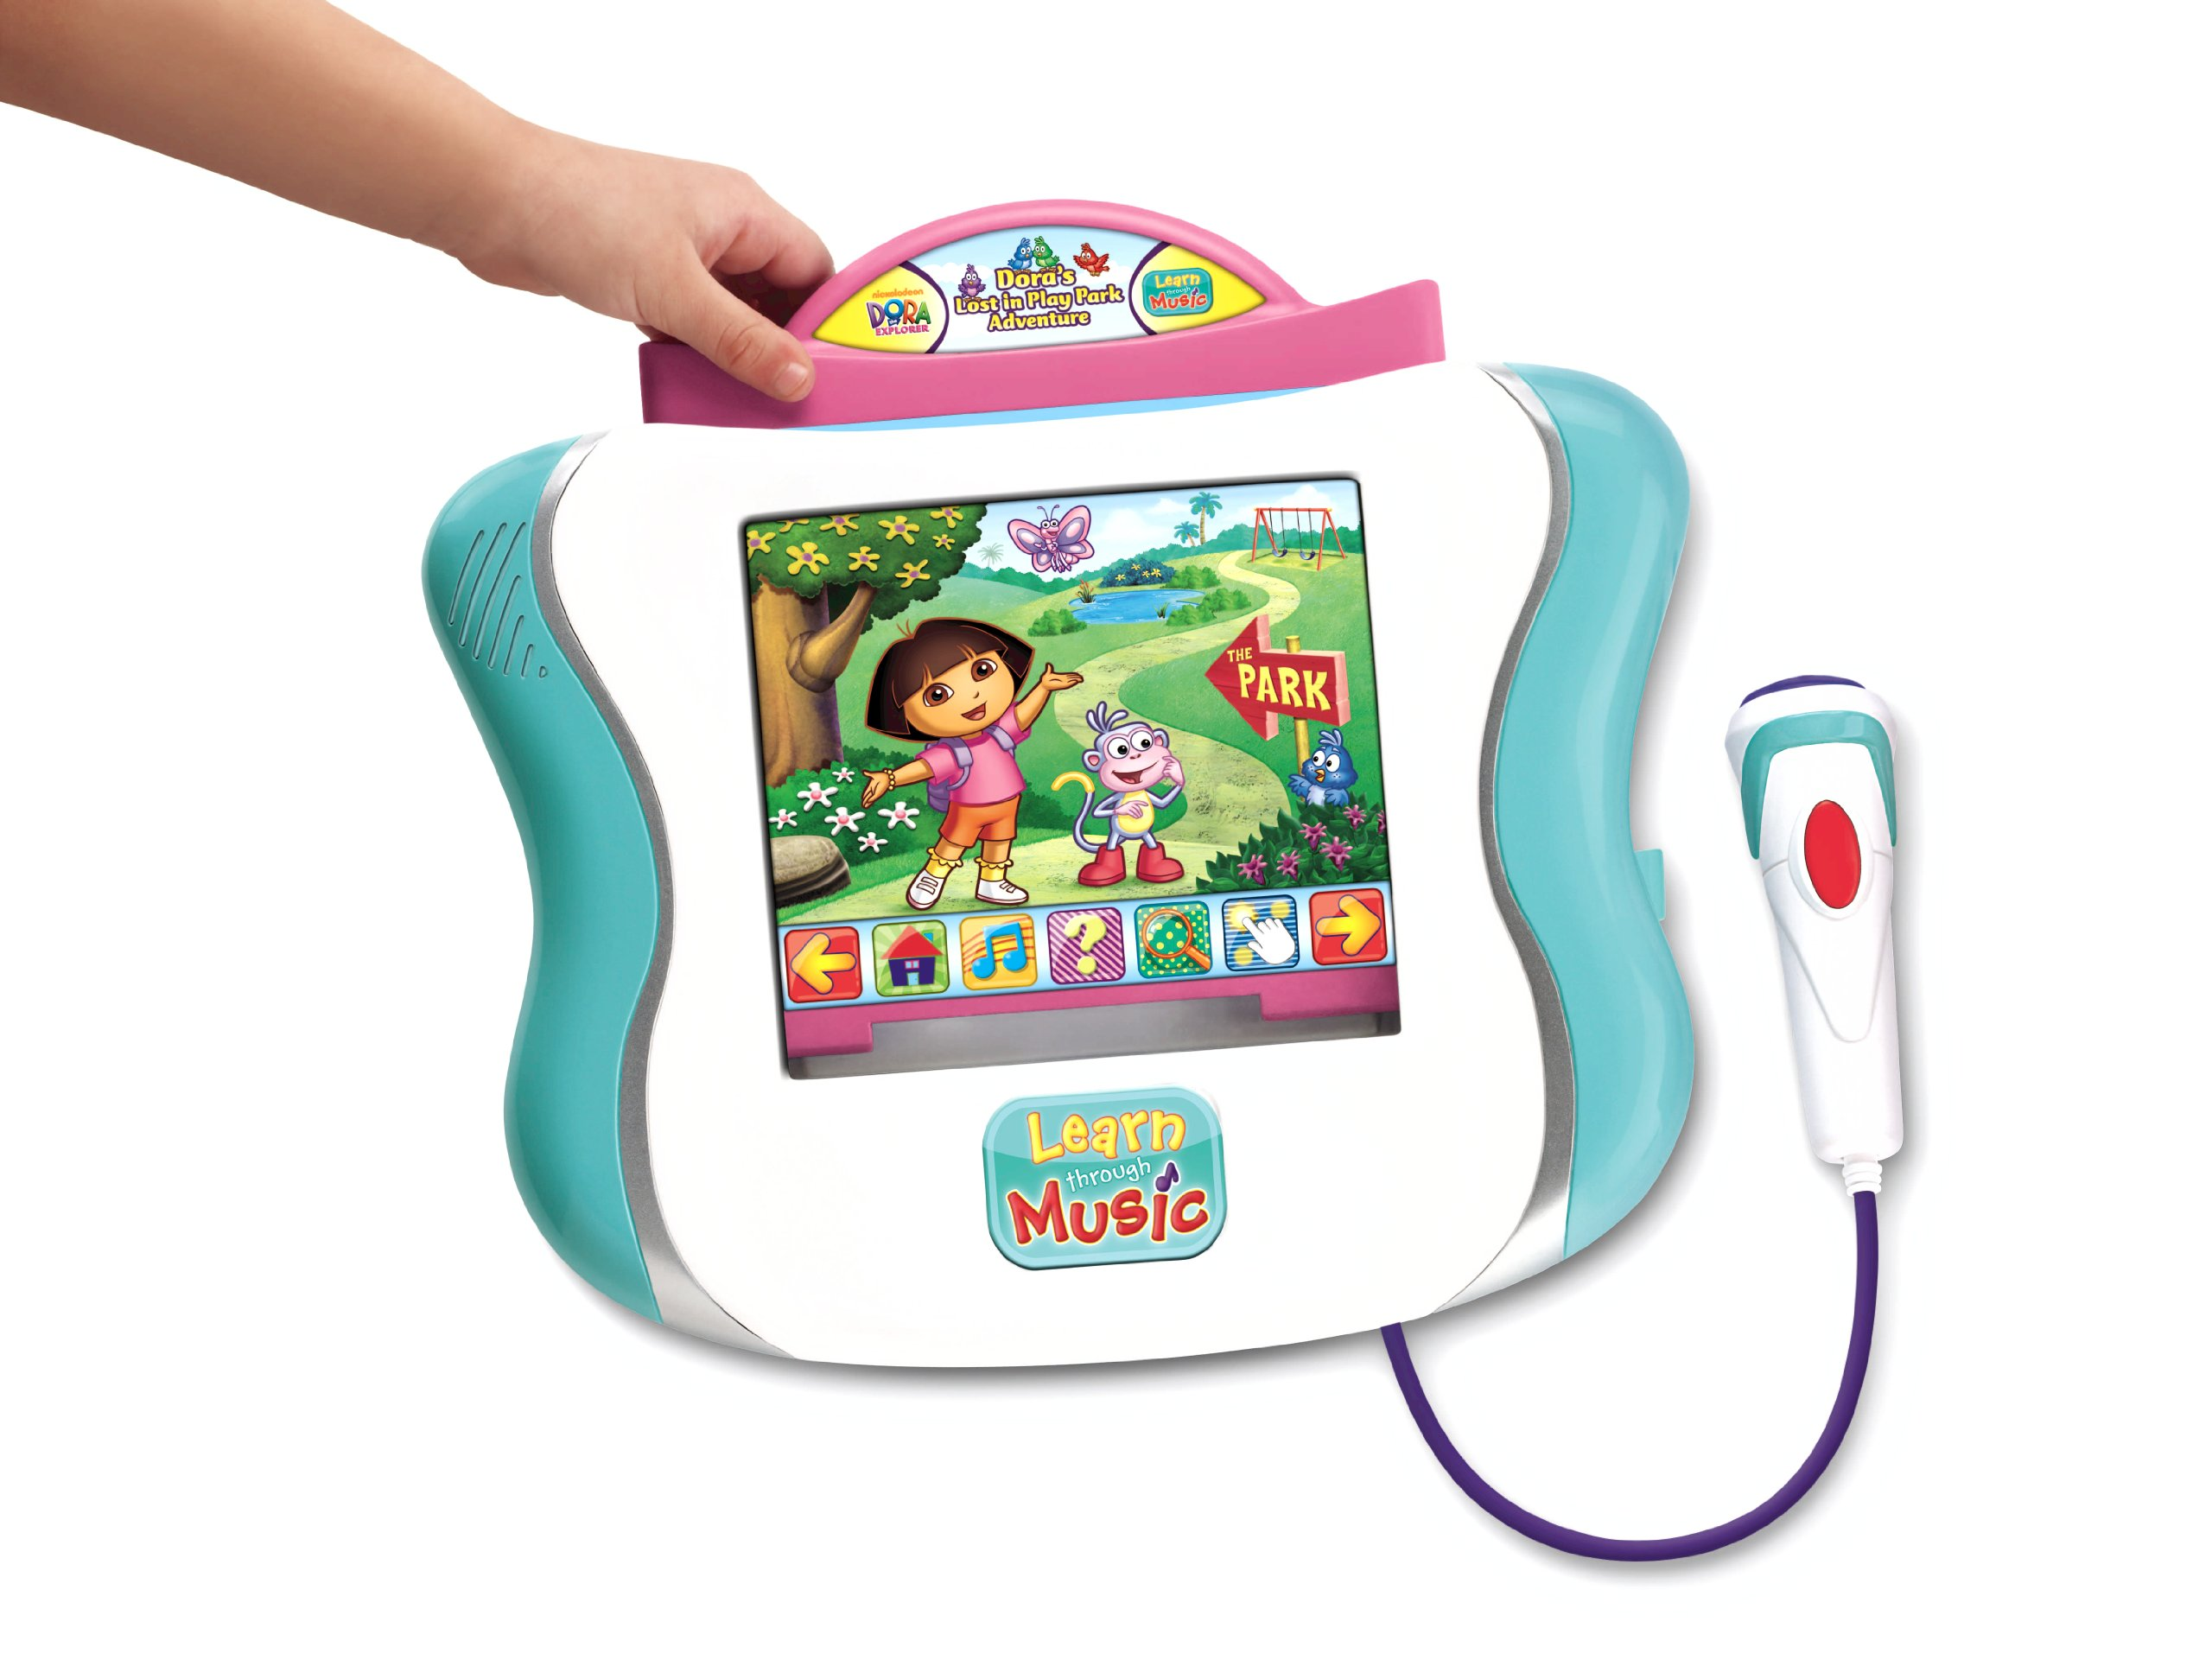 Fisher-Price Learn Through Music Touchpad Software - Dora's Lost in Play Park Adventure by Fisher-Price (Image #2)